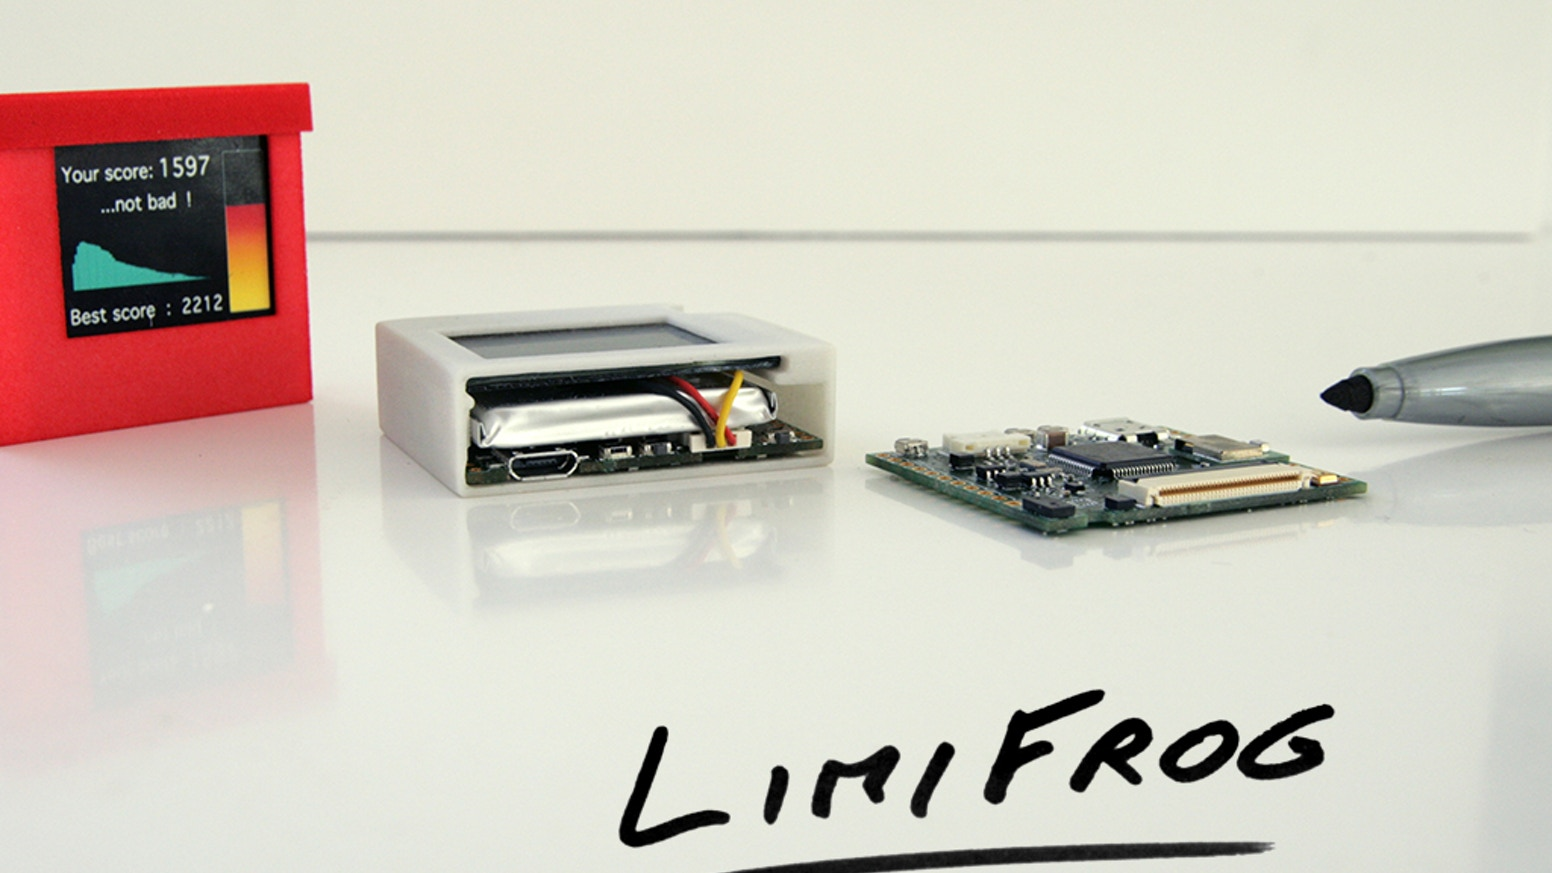 LimiFrog — Ultra-compact prototyping  For IoT and much more